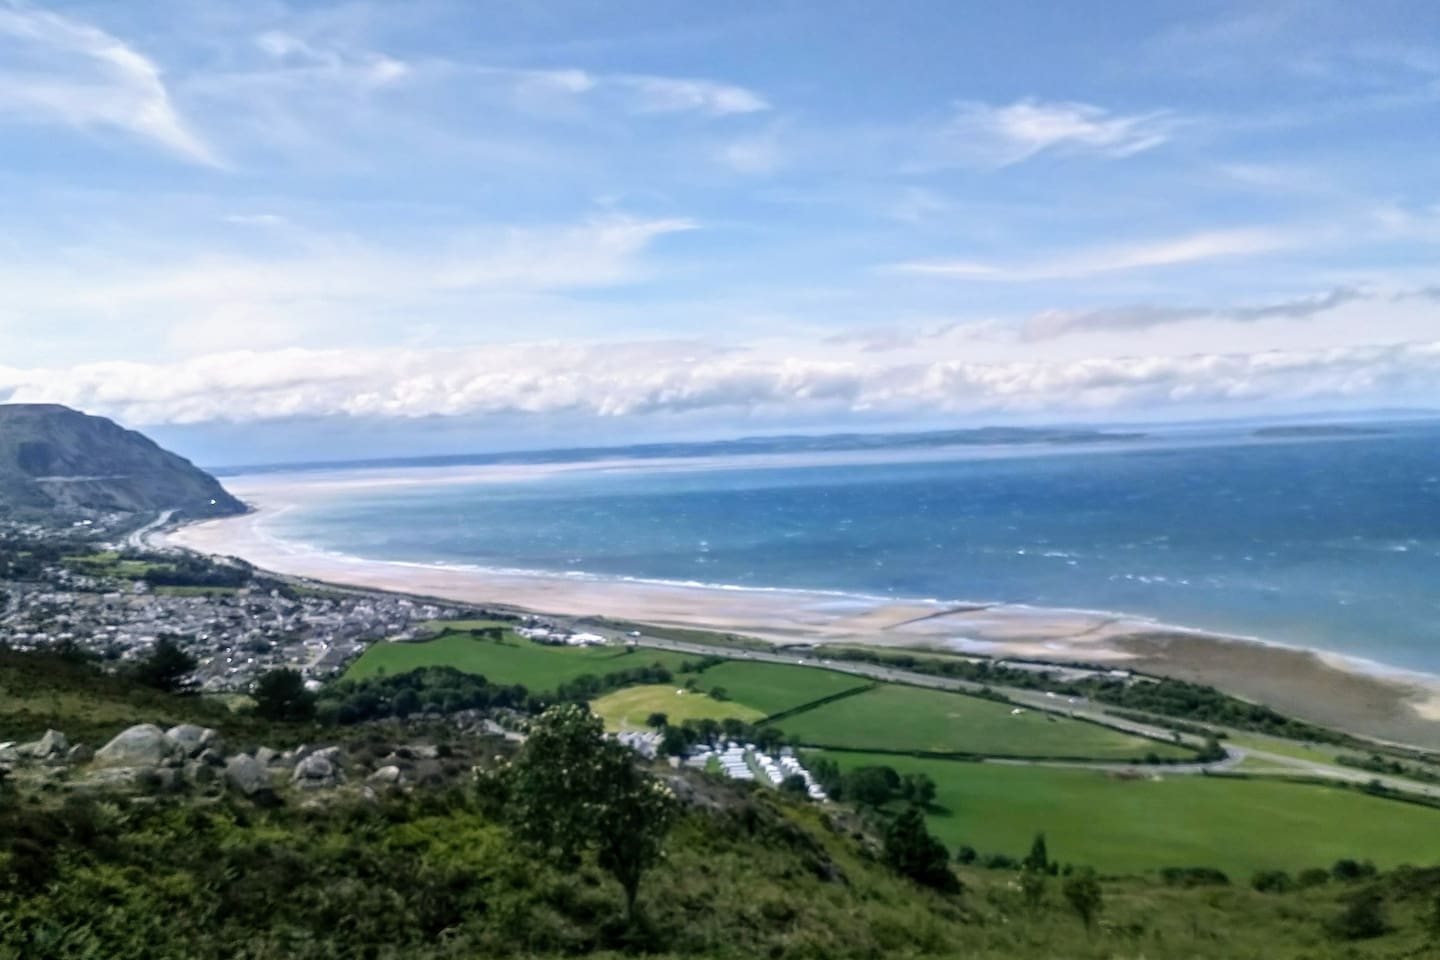 Walk along the beach at Dwygyfylchi to the cafe at Penmaenmawr